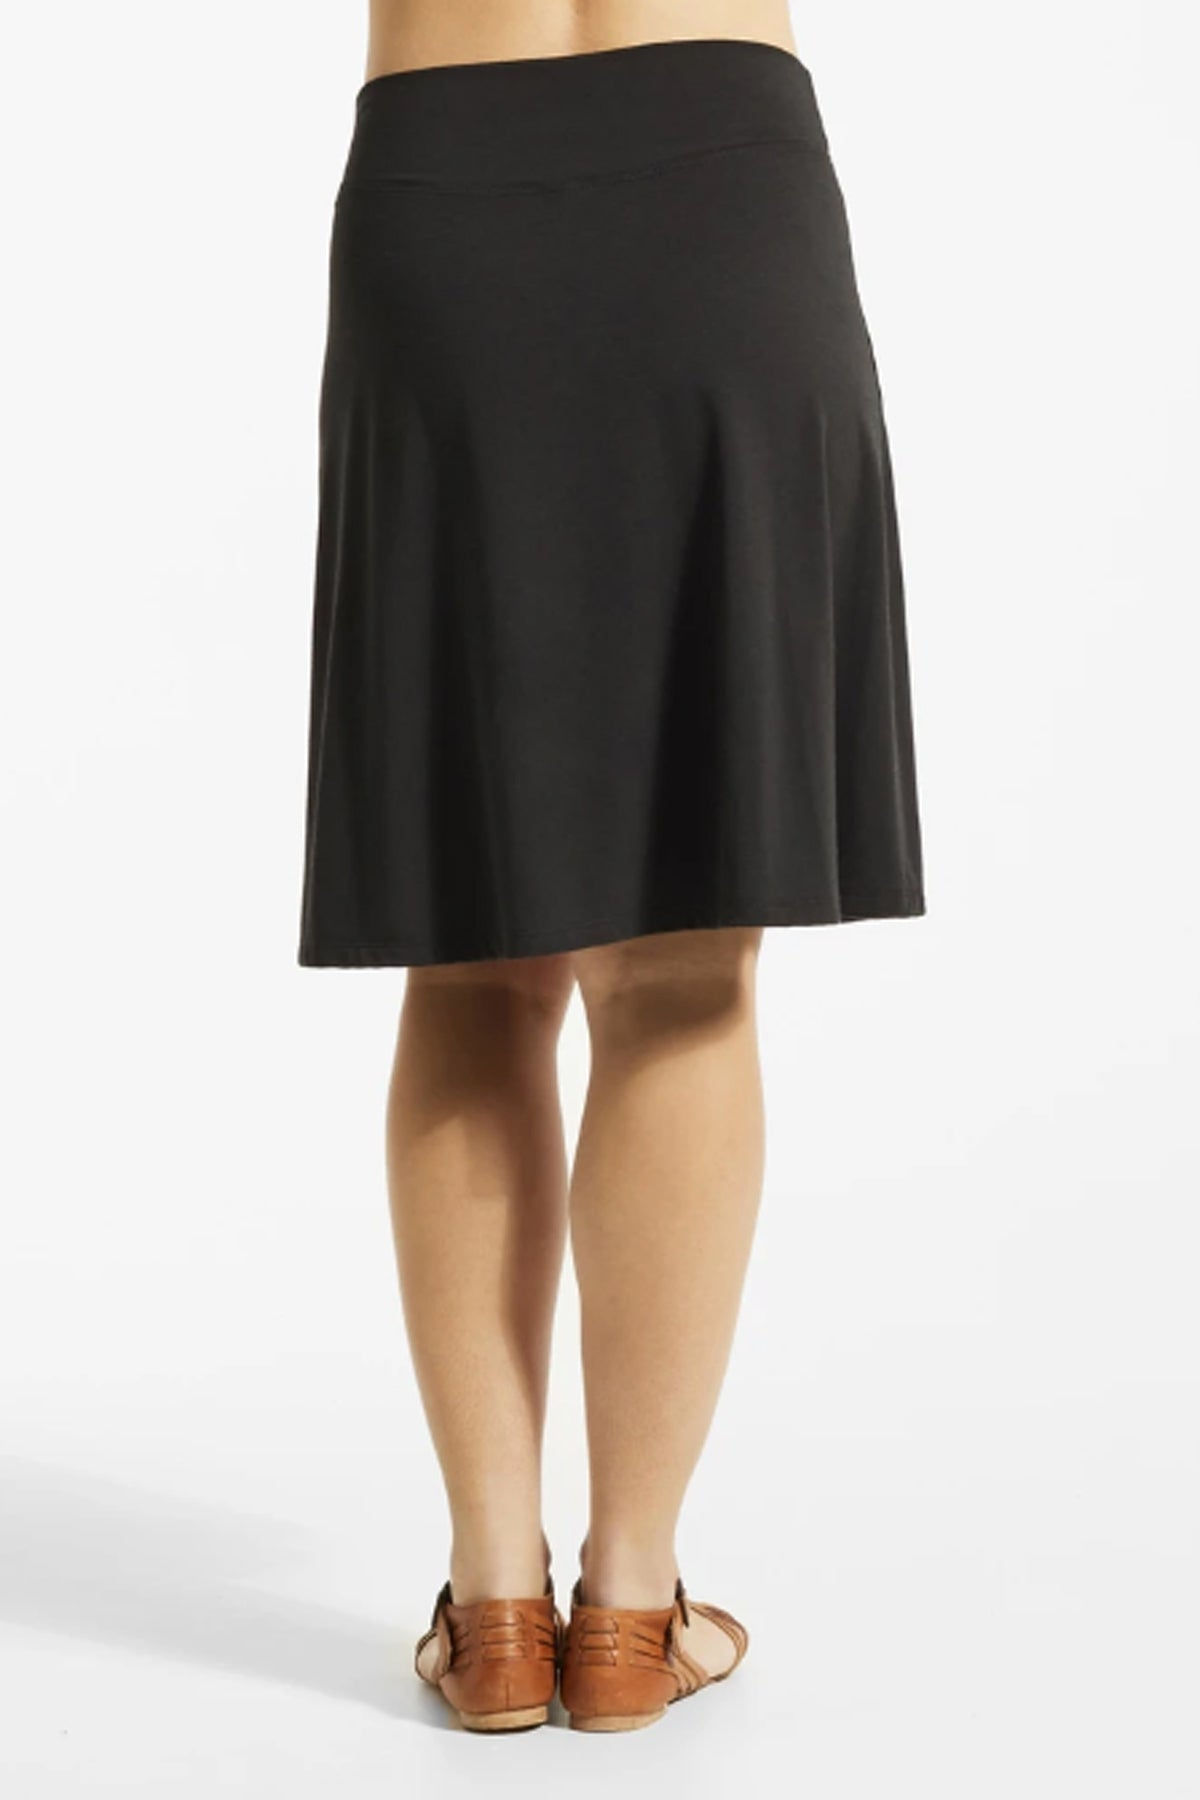 JIF Skirt by FIG, Black, back view, Drirelease fabric, A-line, wide waistband, sizes XS to XL, made in Canada